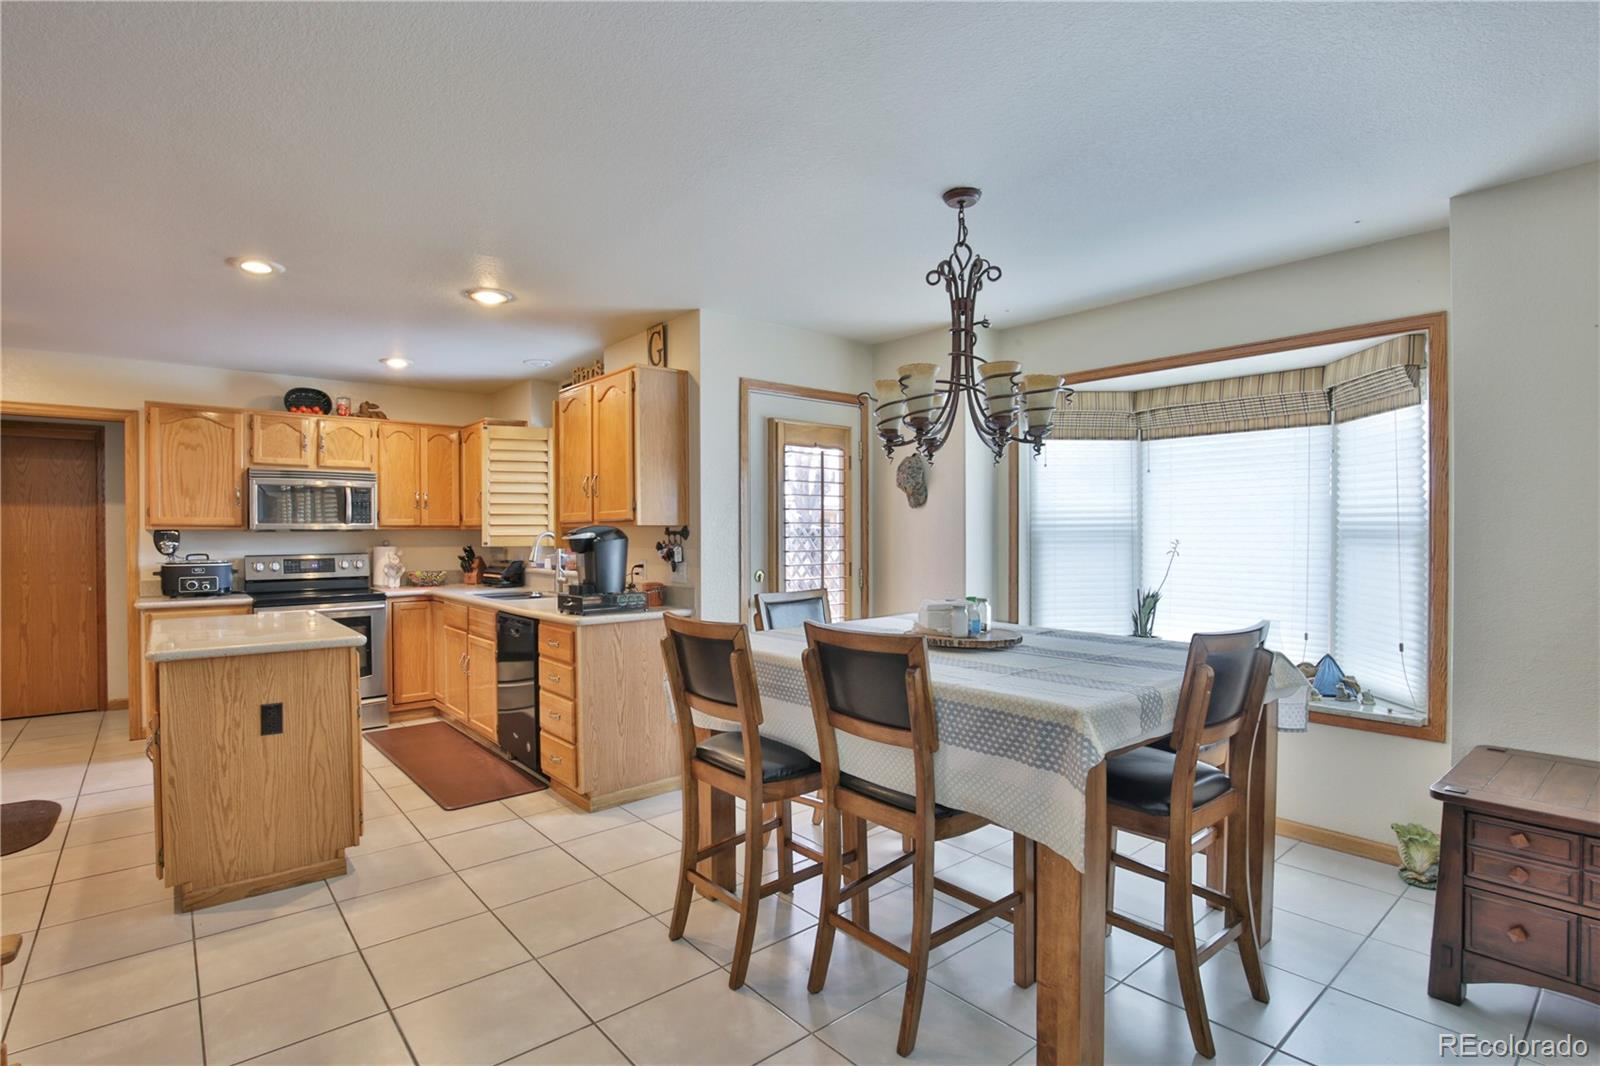 MLS# 5977333 - 4 - 5187 Youngfield Court, Arvada, CO 80002